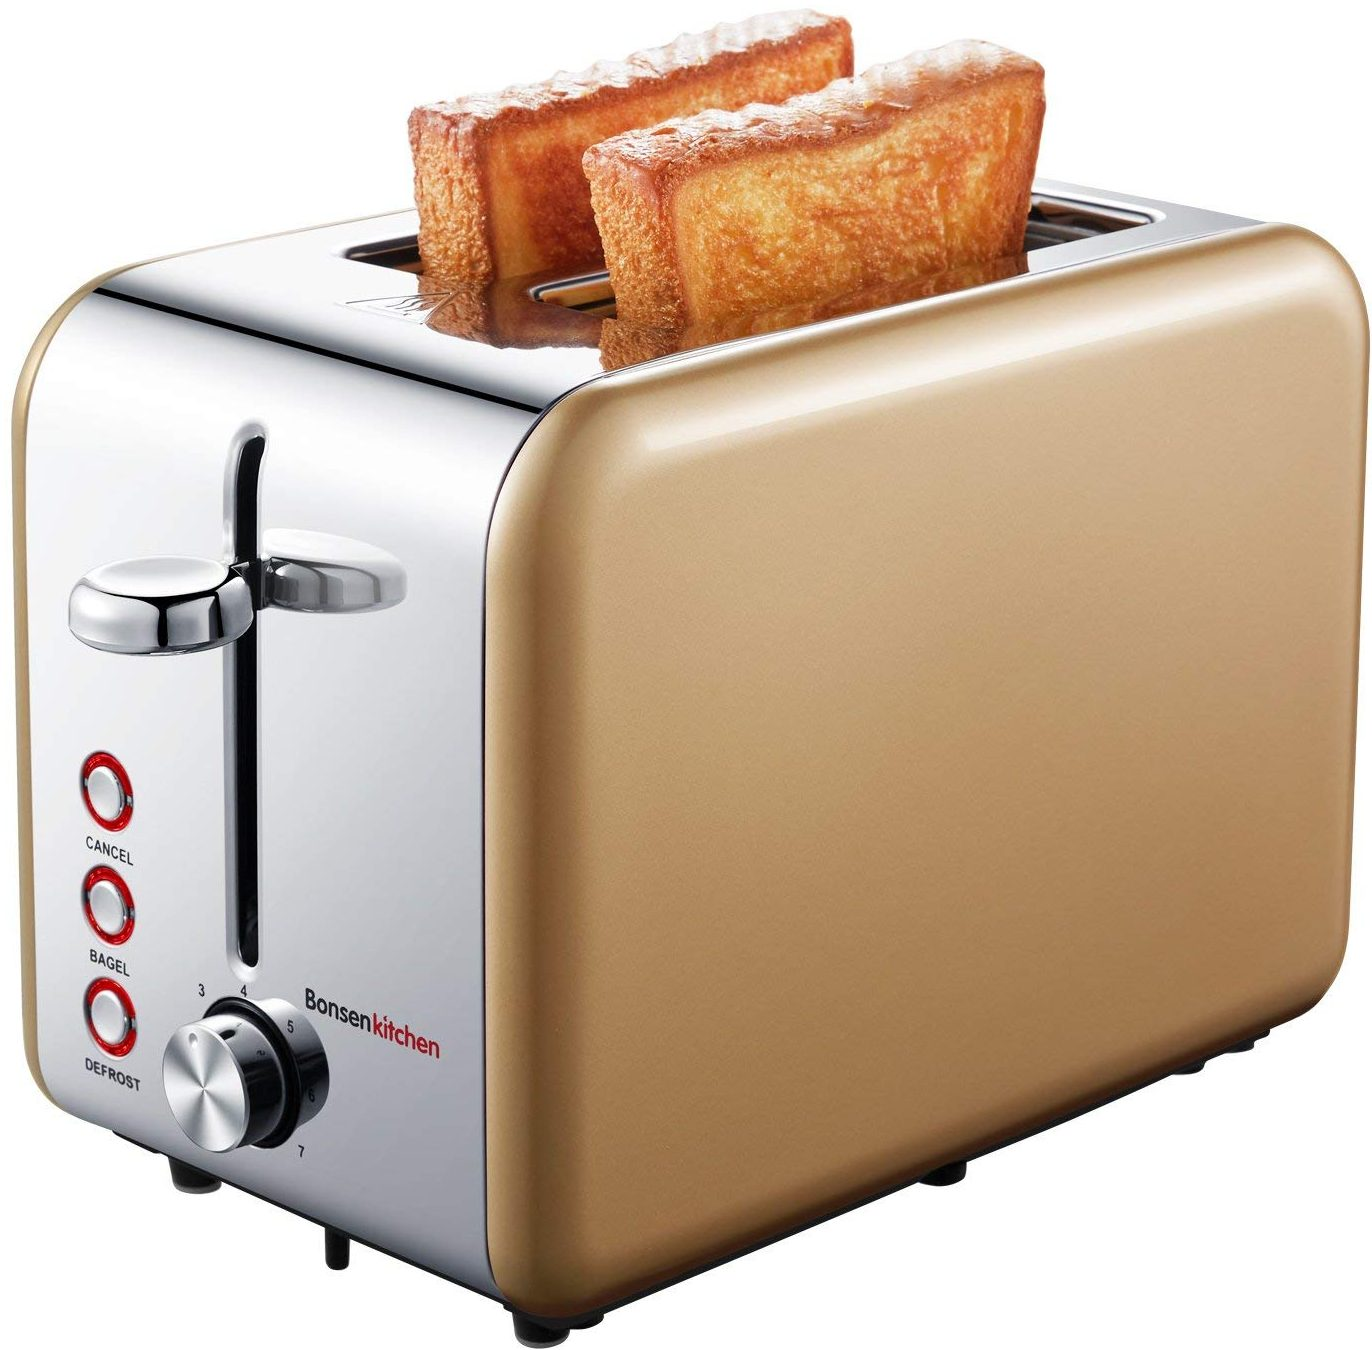 Bonsenkitchen Wide-Slot Toaster